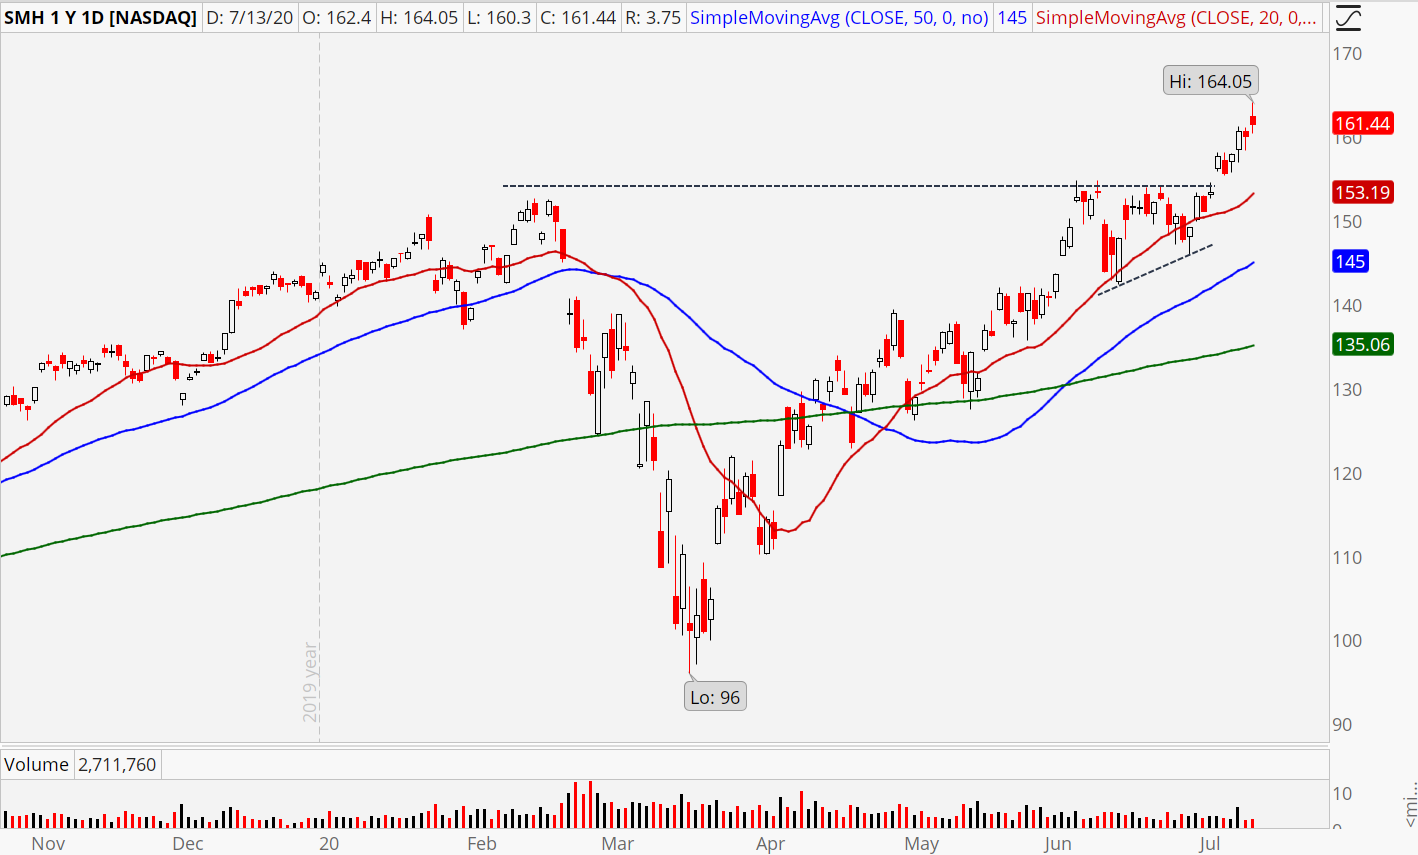 Semiconductor ETF (SMH) chart showing recent breakout pattern